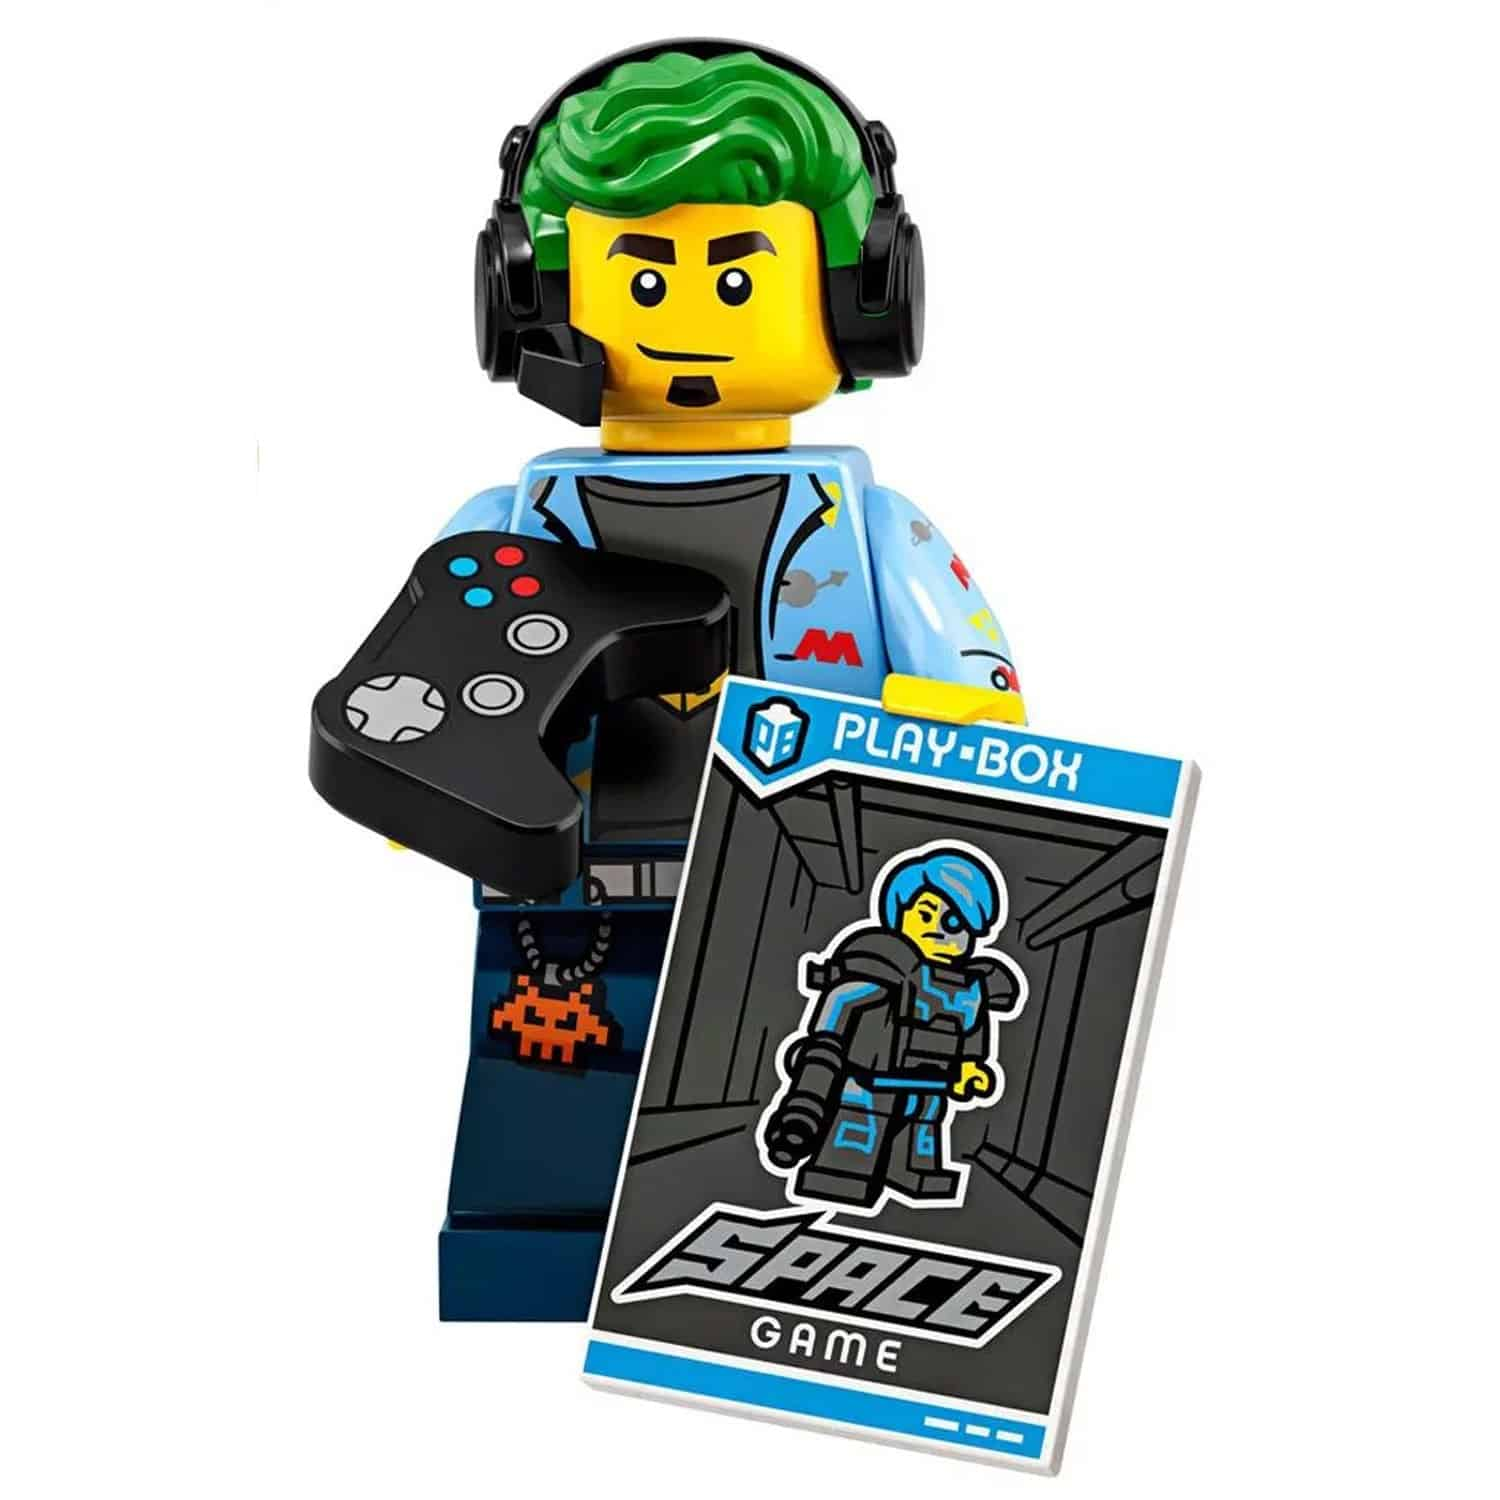 LEGO Video Gamer Minifigure – Series 19 CMF